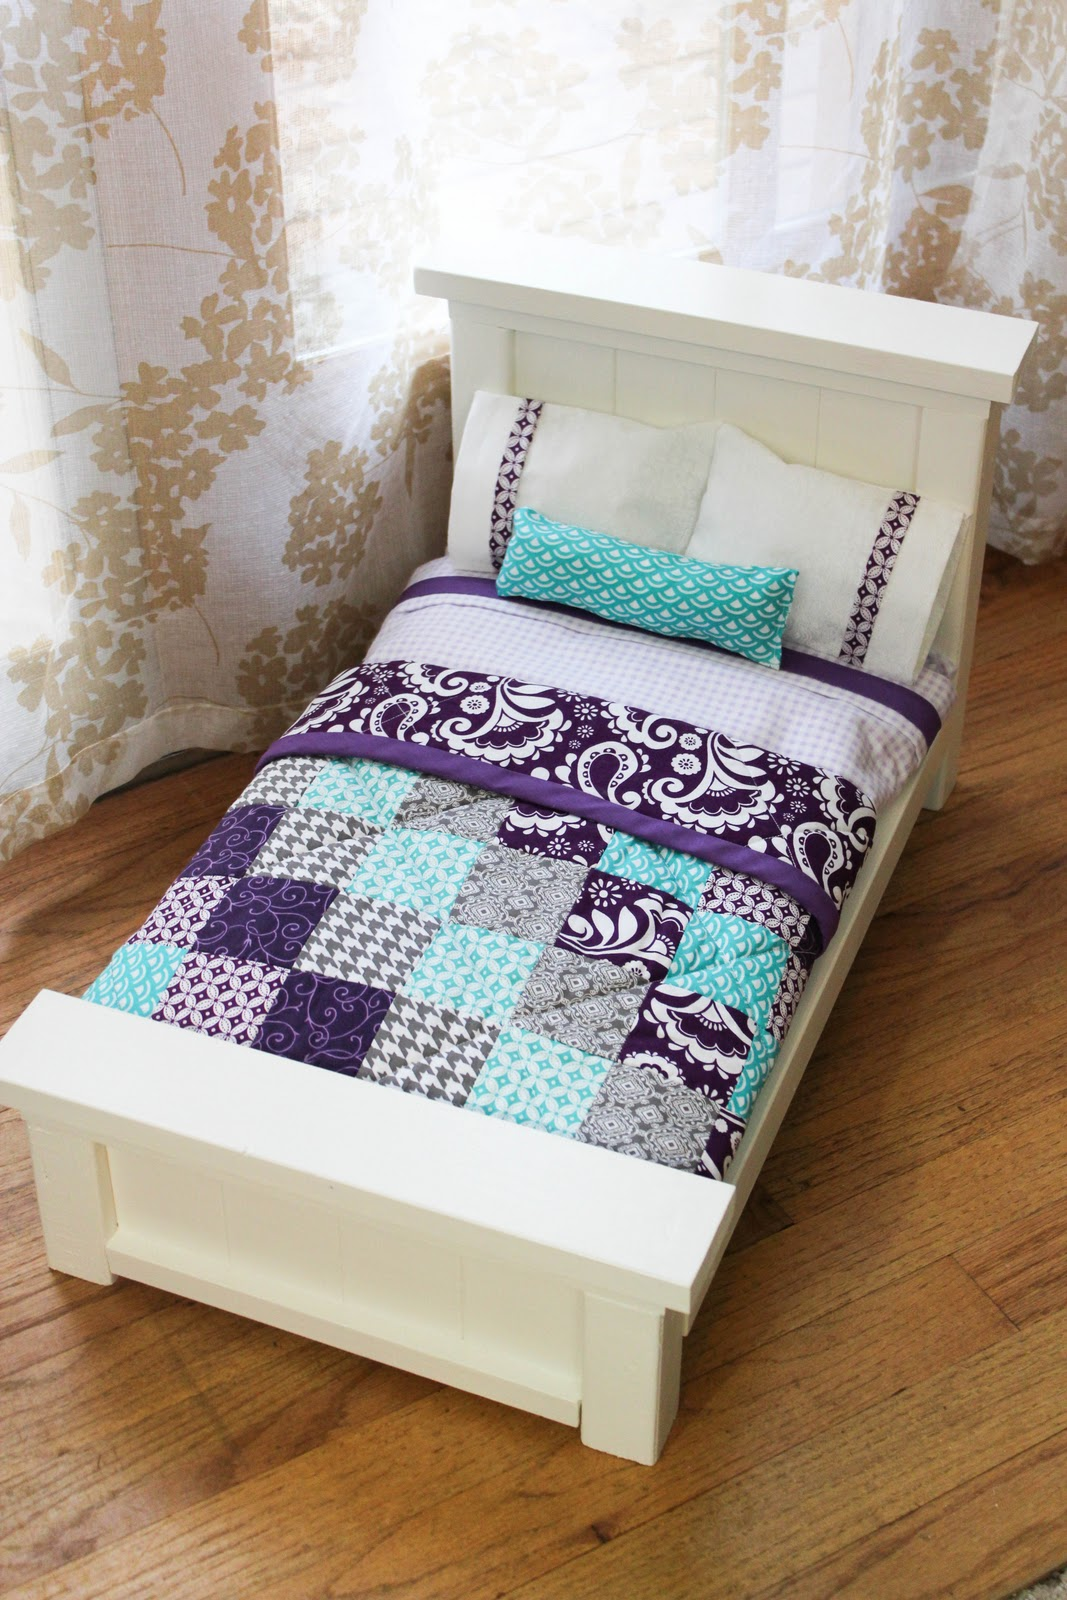 18 doll sofa diy memory foam mattress toppers for beds from dahlias to doxies and tiny quilts